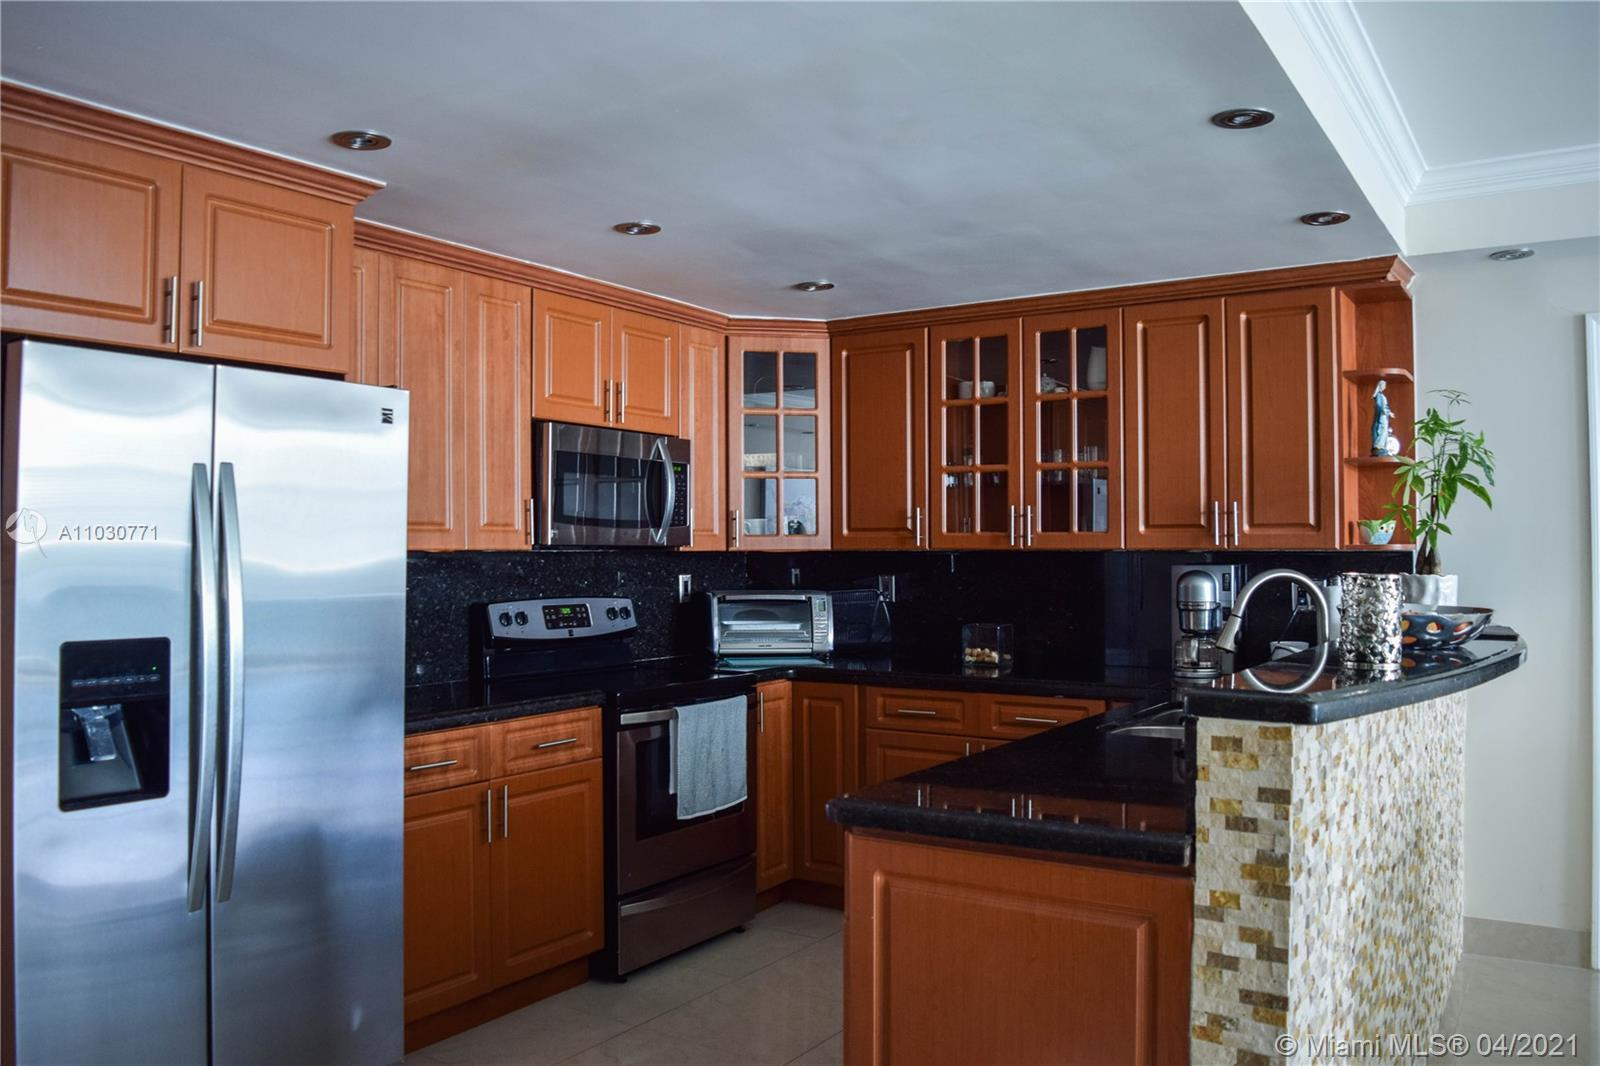 AMAZING LOCATION, BIGGEST 3/2 UNIT IN THE BUILDING. COMPLETELY REMODELED, TWO NEW AIR CONDITIONING U